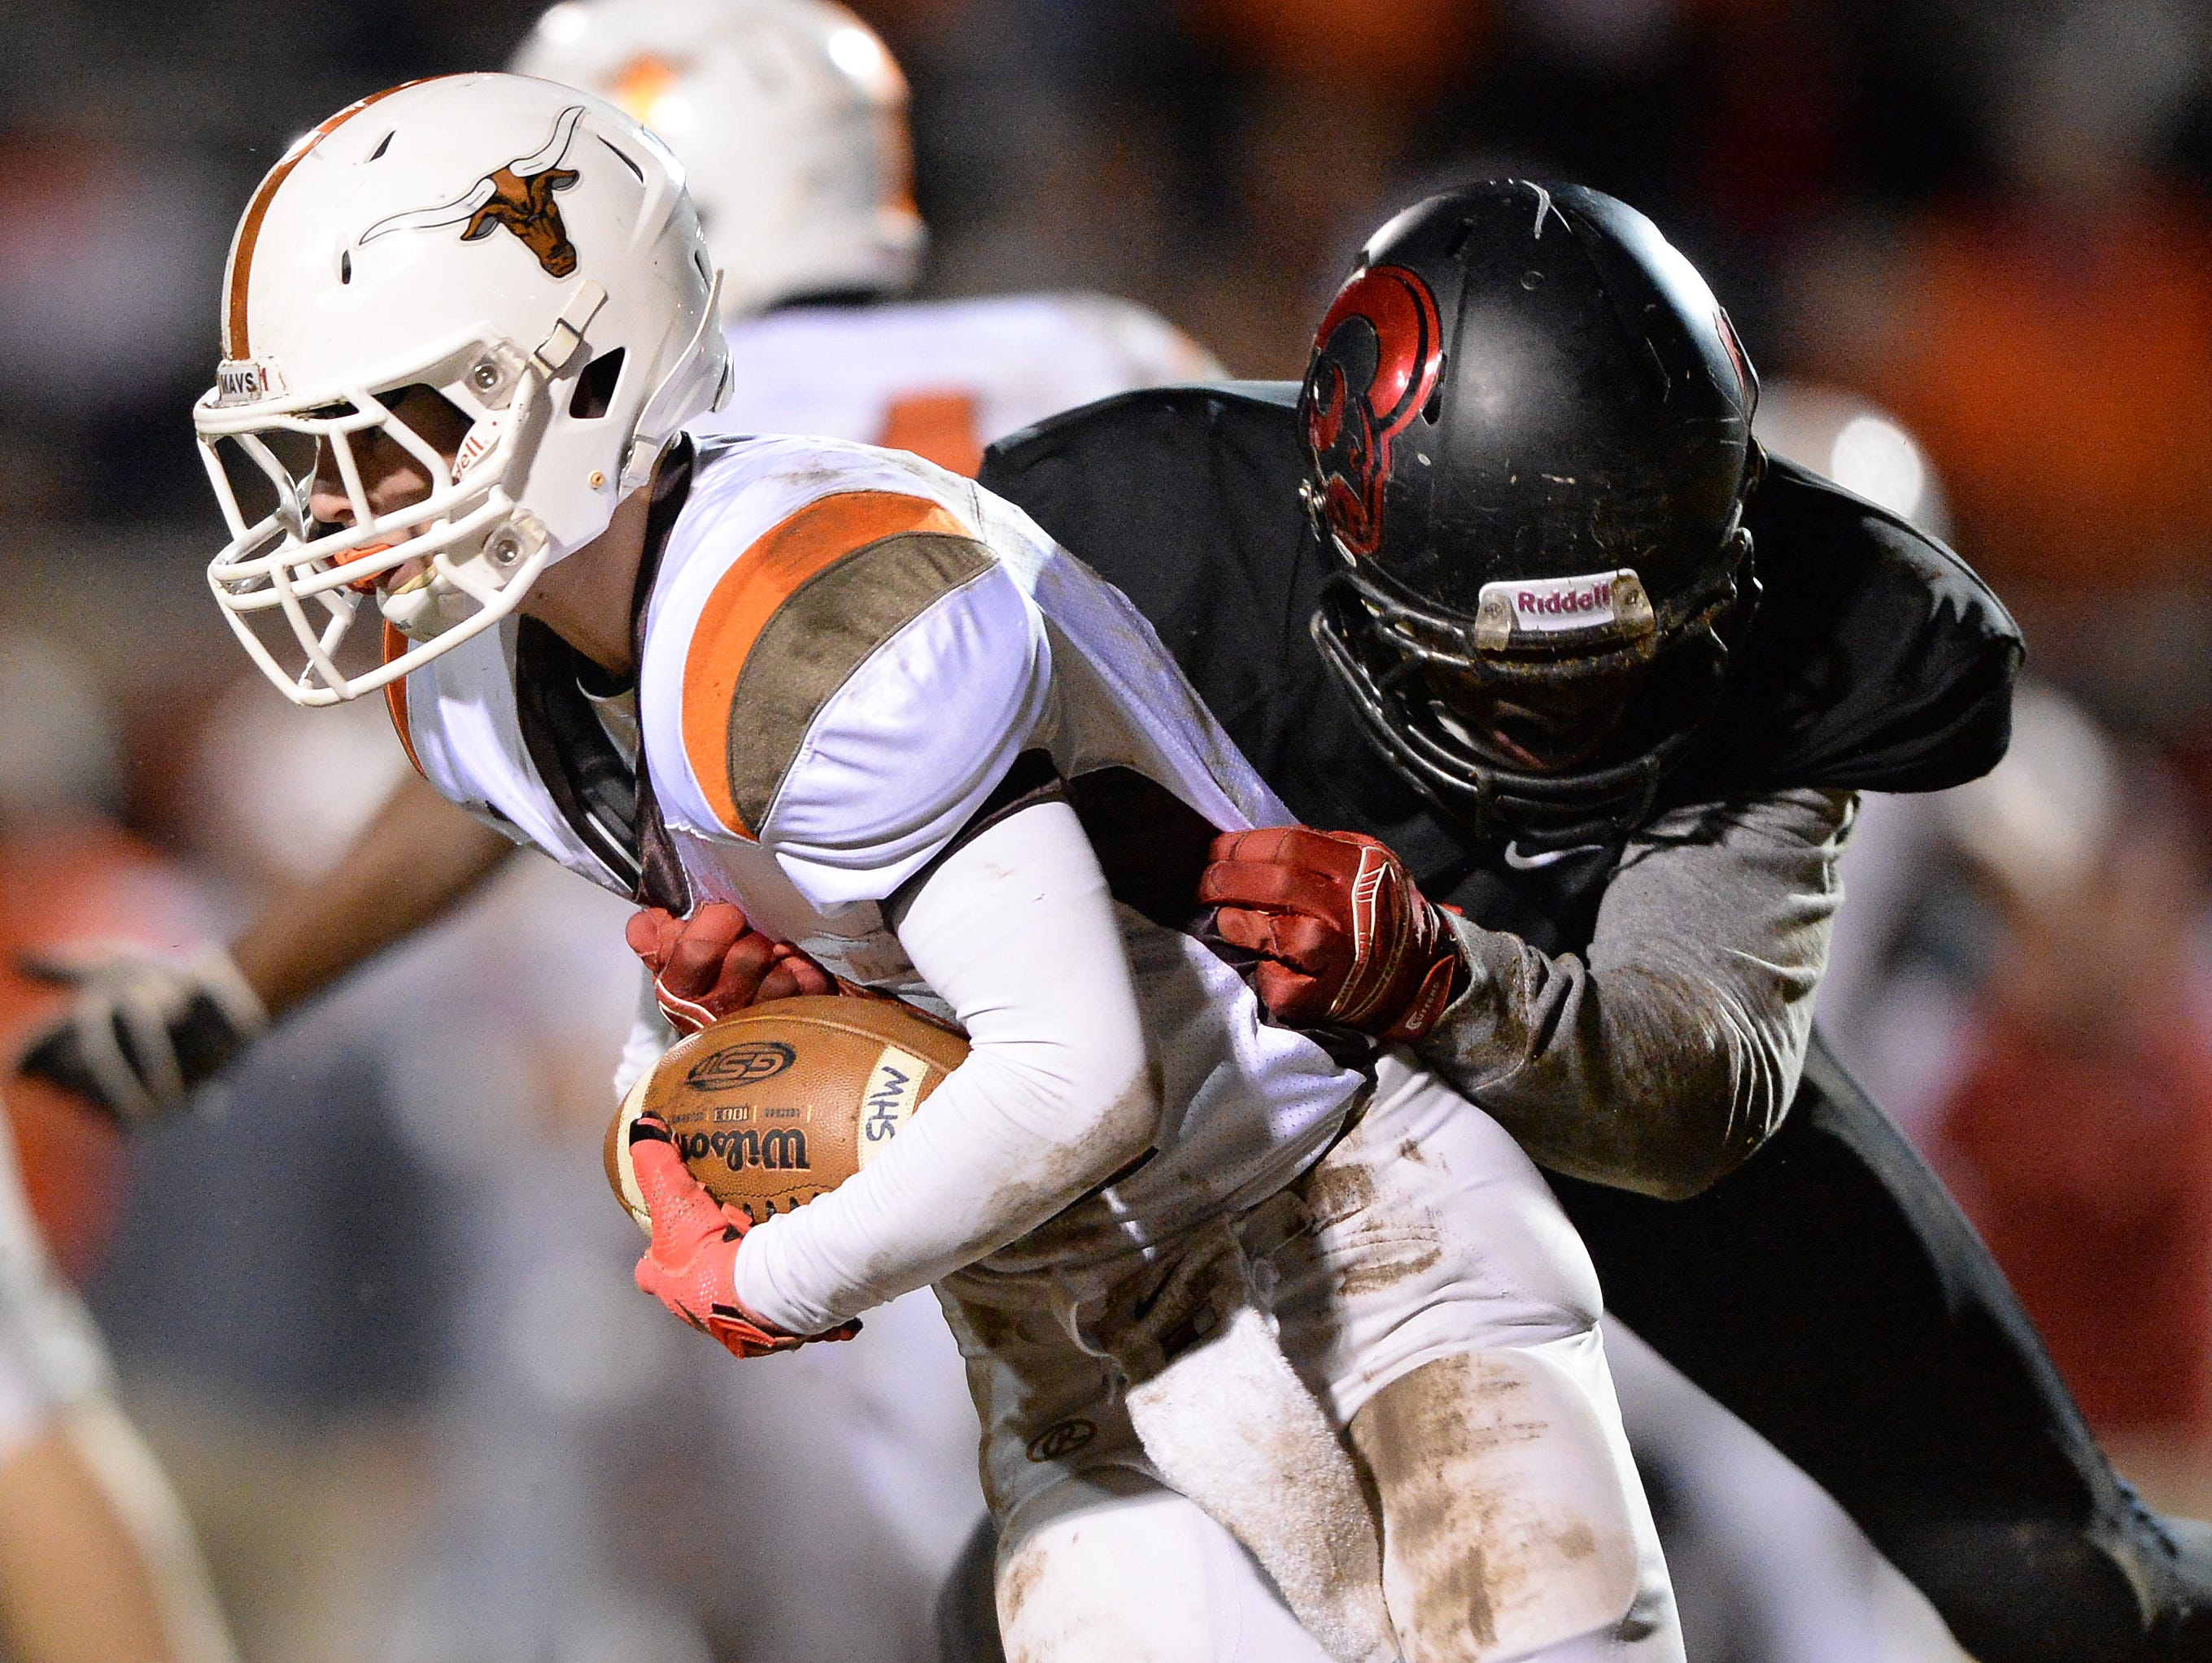 Hillcrest's Tori Delesline (4) sacks Mauldin quarterback Mitch Norman (11) during the first round of the Class AAAA Division-I playoffs Friday, November 20, 2015 at Hillcrest High.